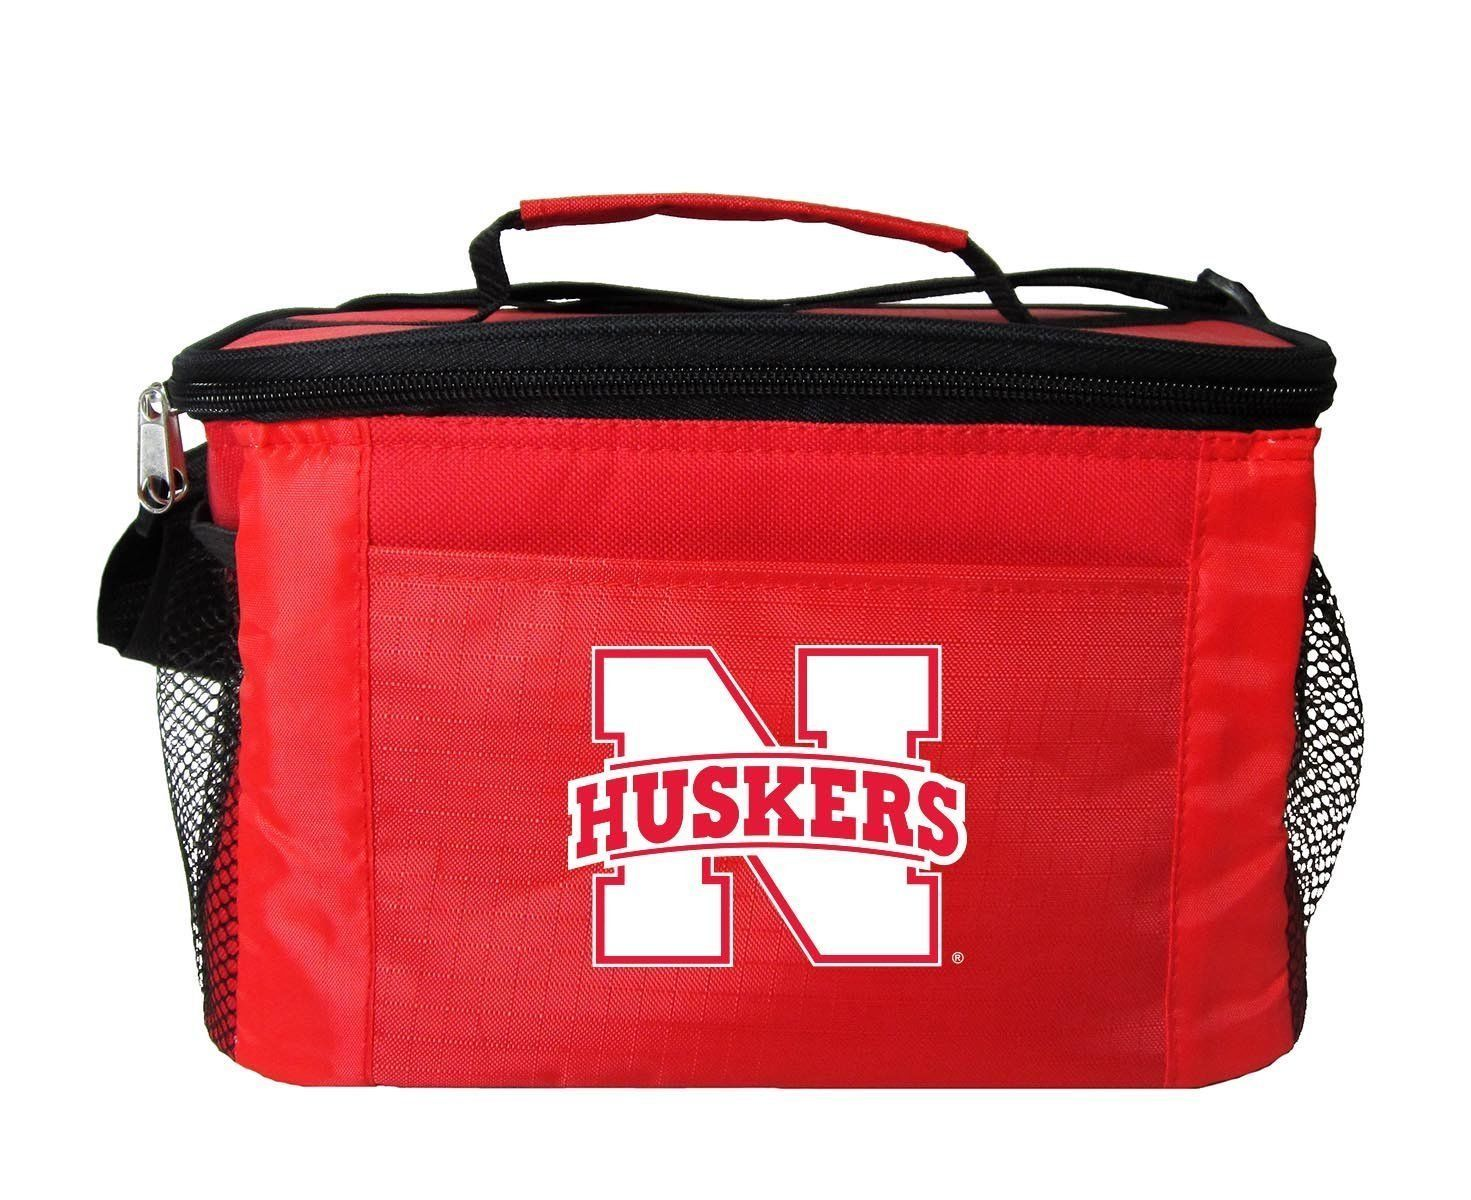 NEBRASKA HUSKERS LUNCH TOTE 6 PK BEER SODA TEAM LOGO KOOLER BAG NCAA